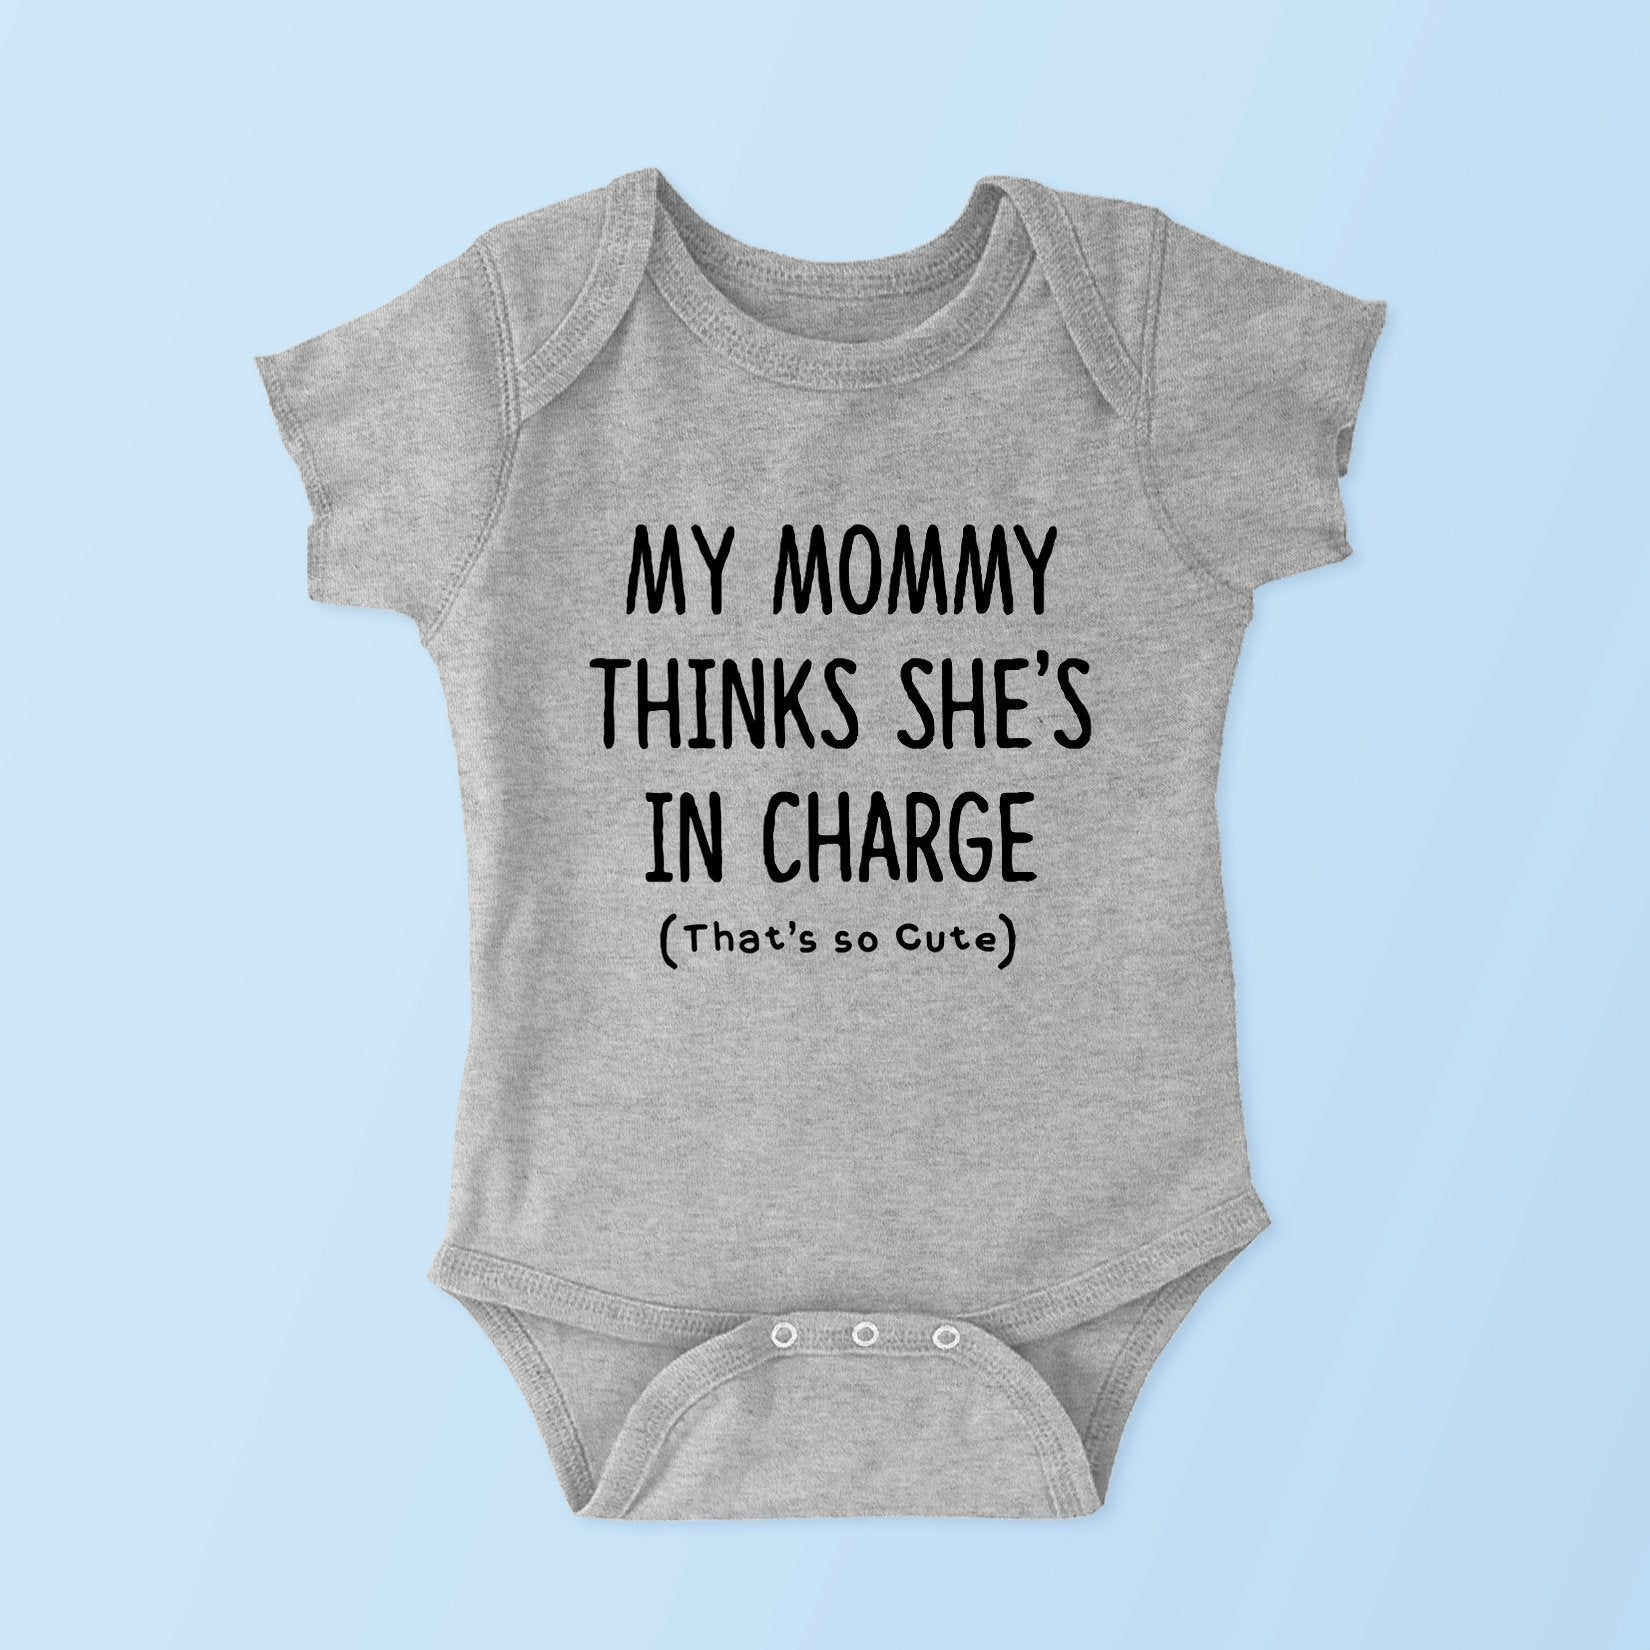 459cbd1d3 Mommy Thinks She s In Charge (Baby Onesie   Toddler Youth Tee ...